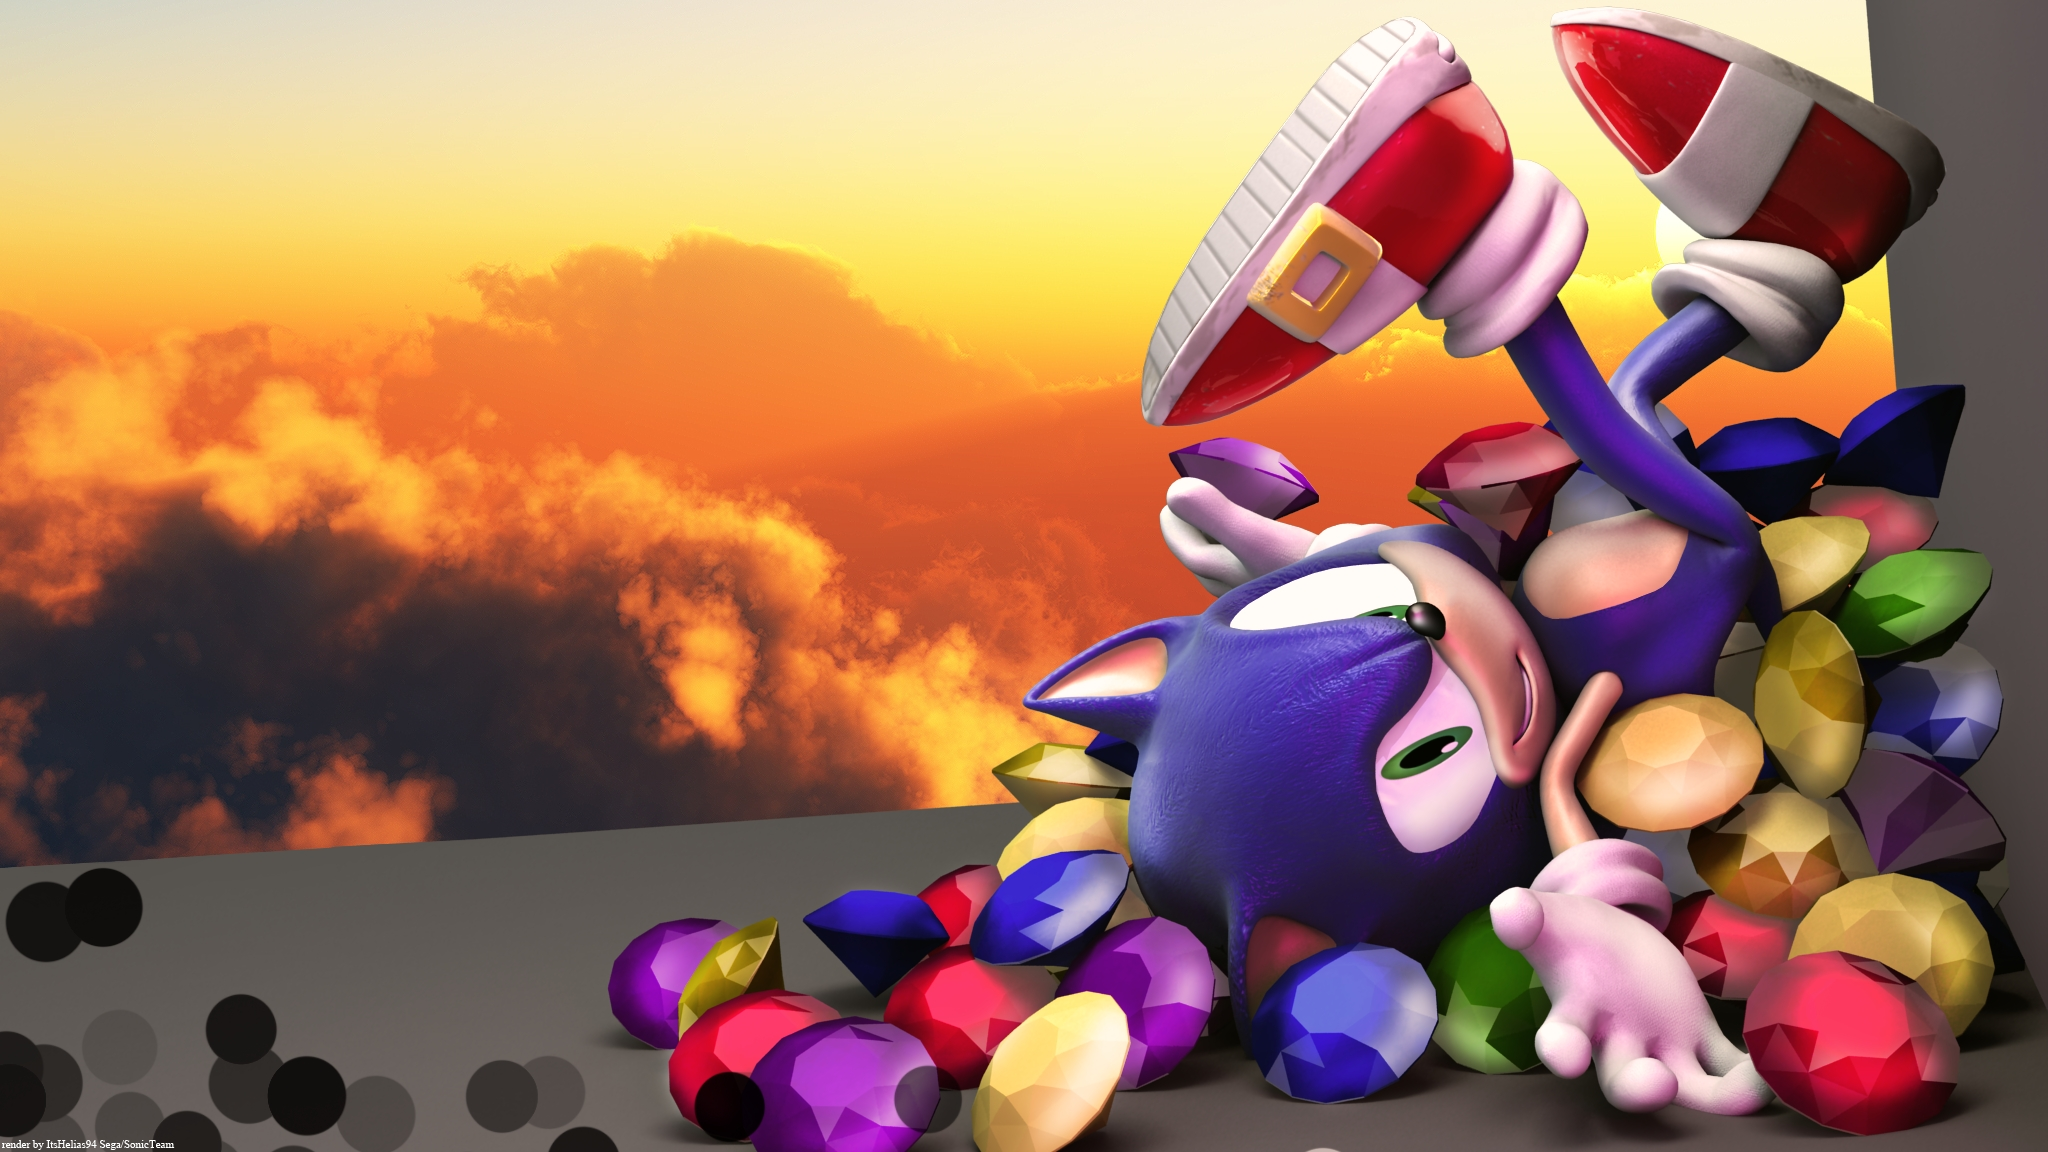 ... download Sonic the Hedgehog (Character) image